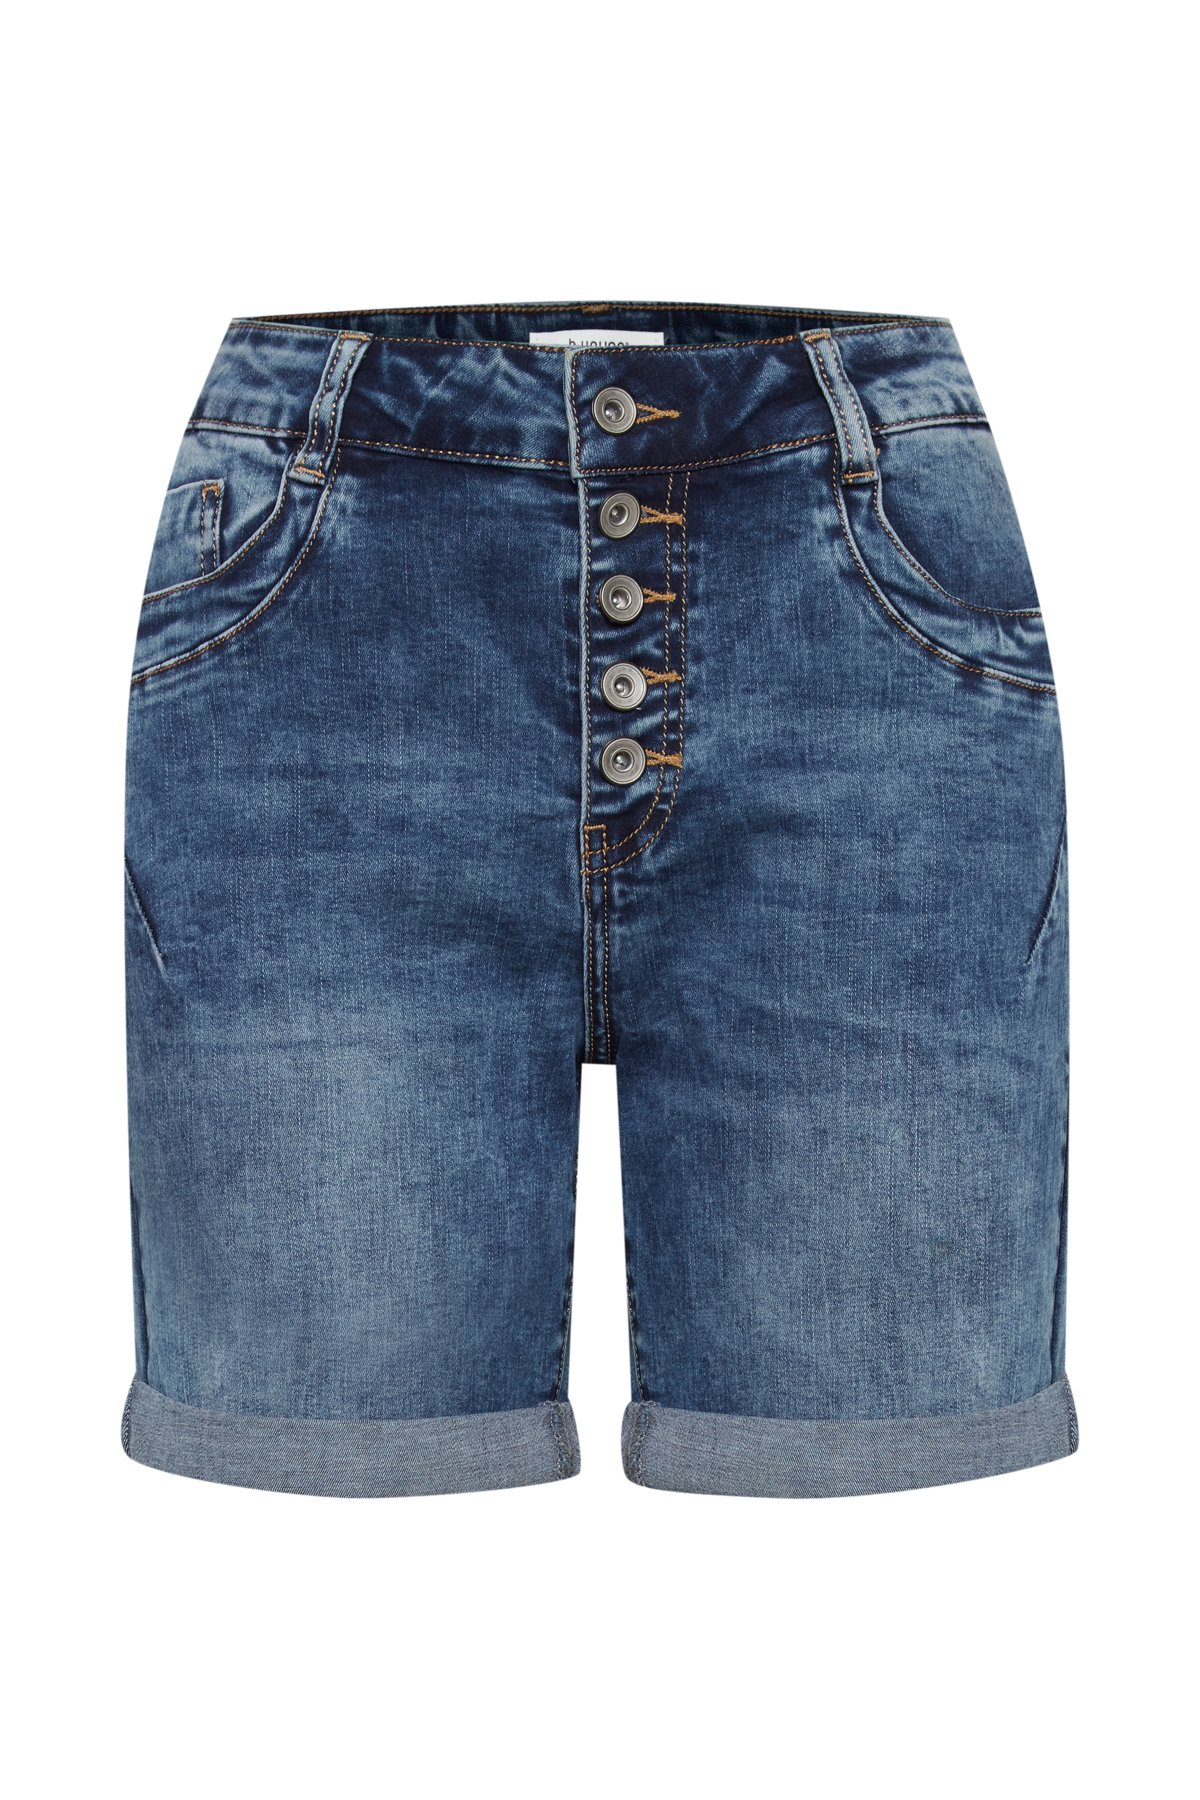 Bxkaily shorts denim